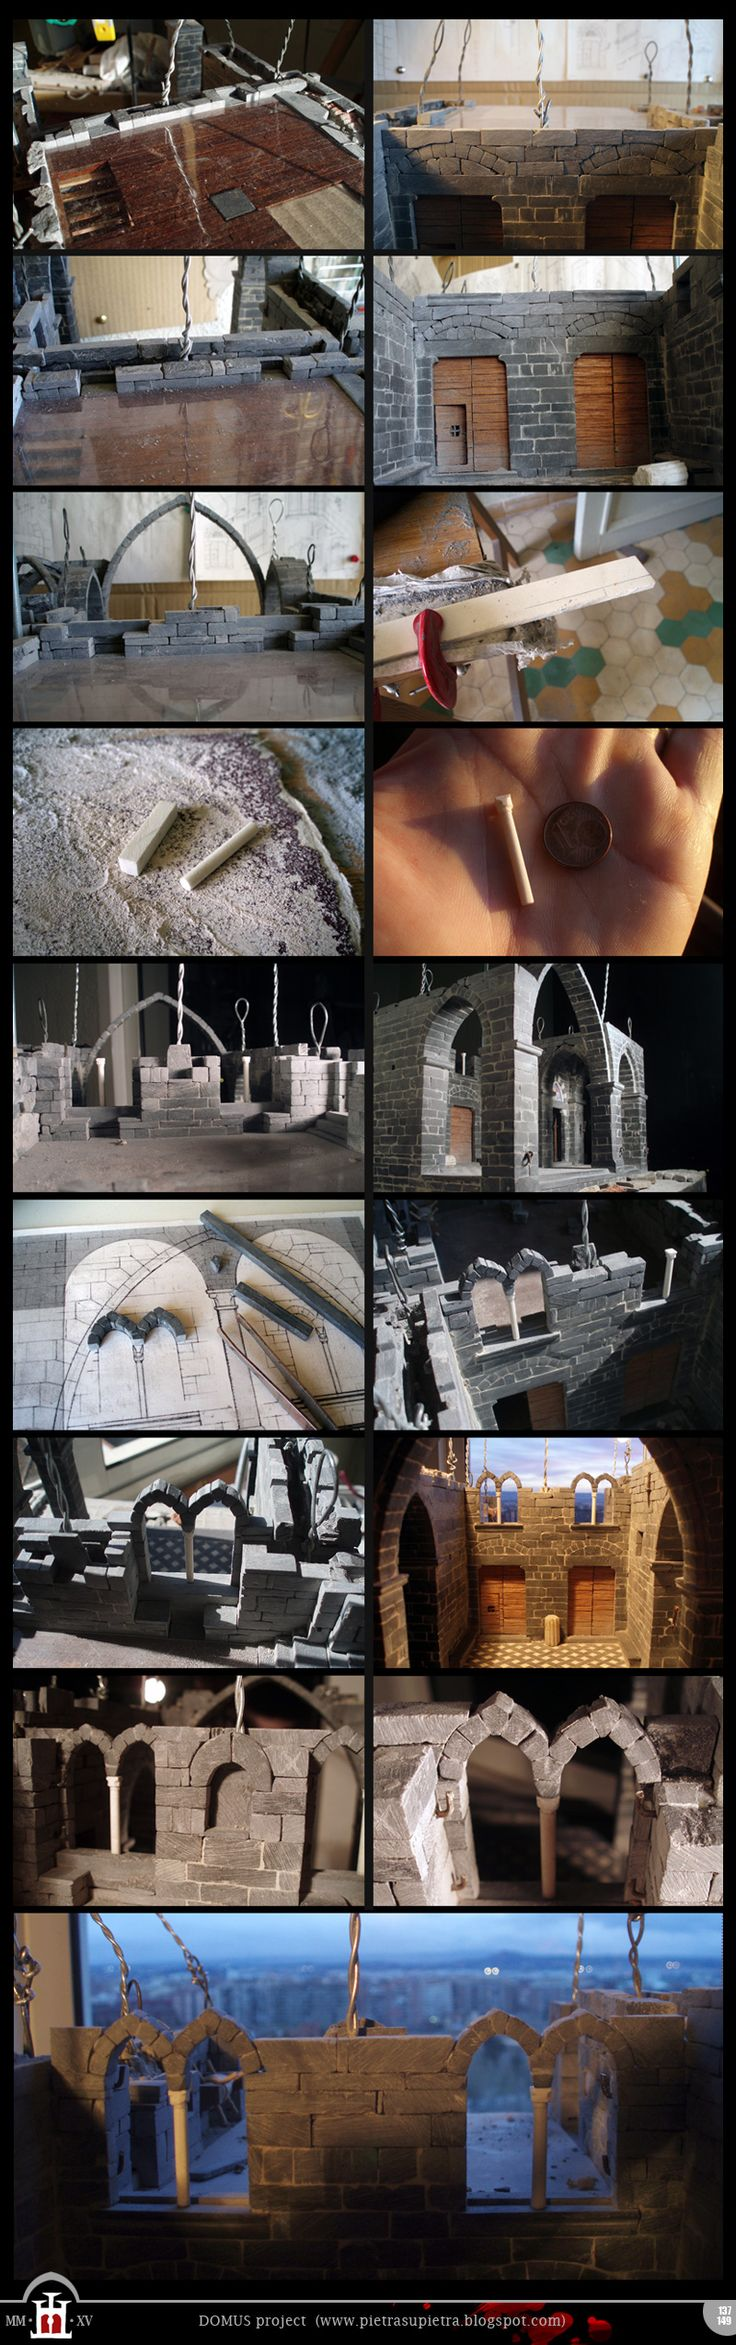 Domus project 137-149: Bìfore (mullioned windows) (part 1)